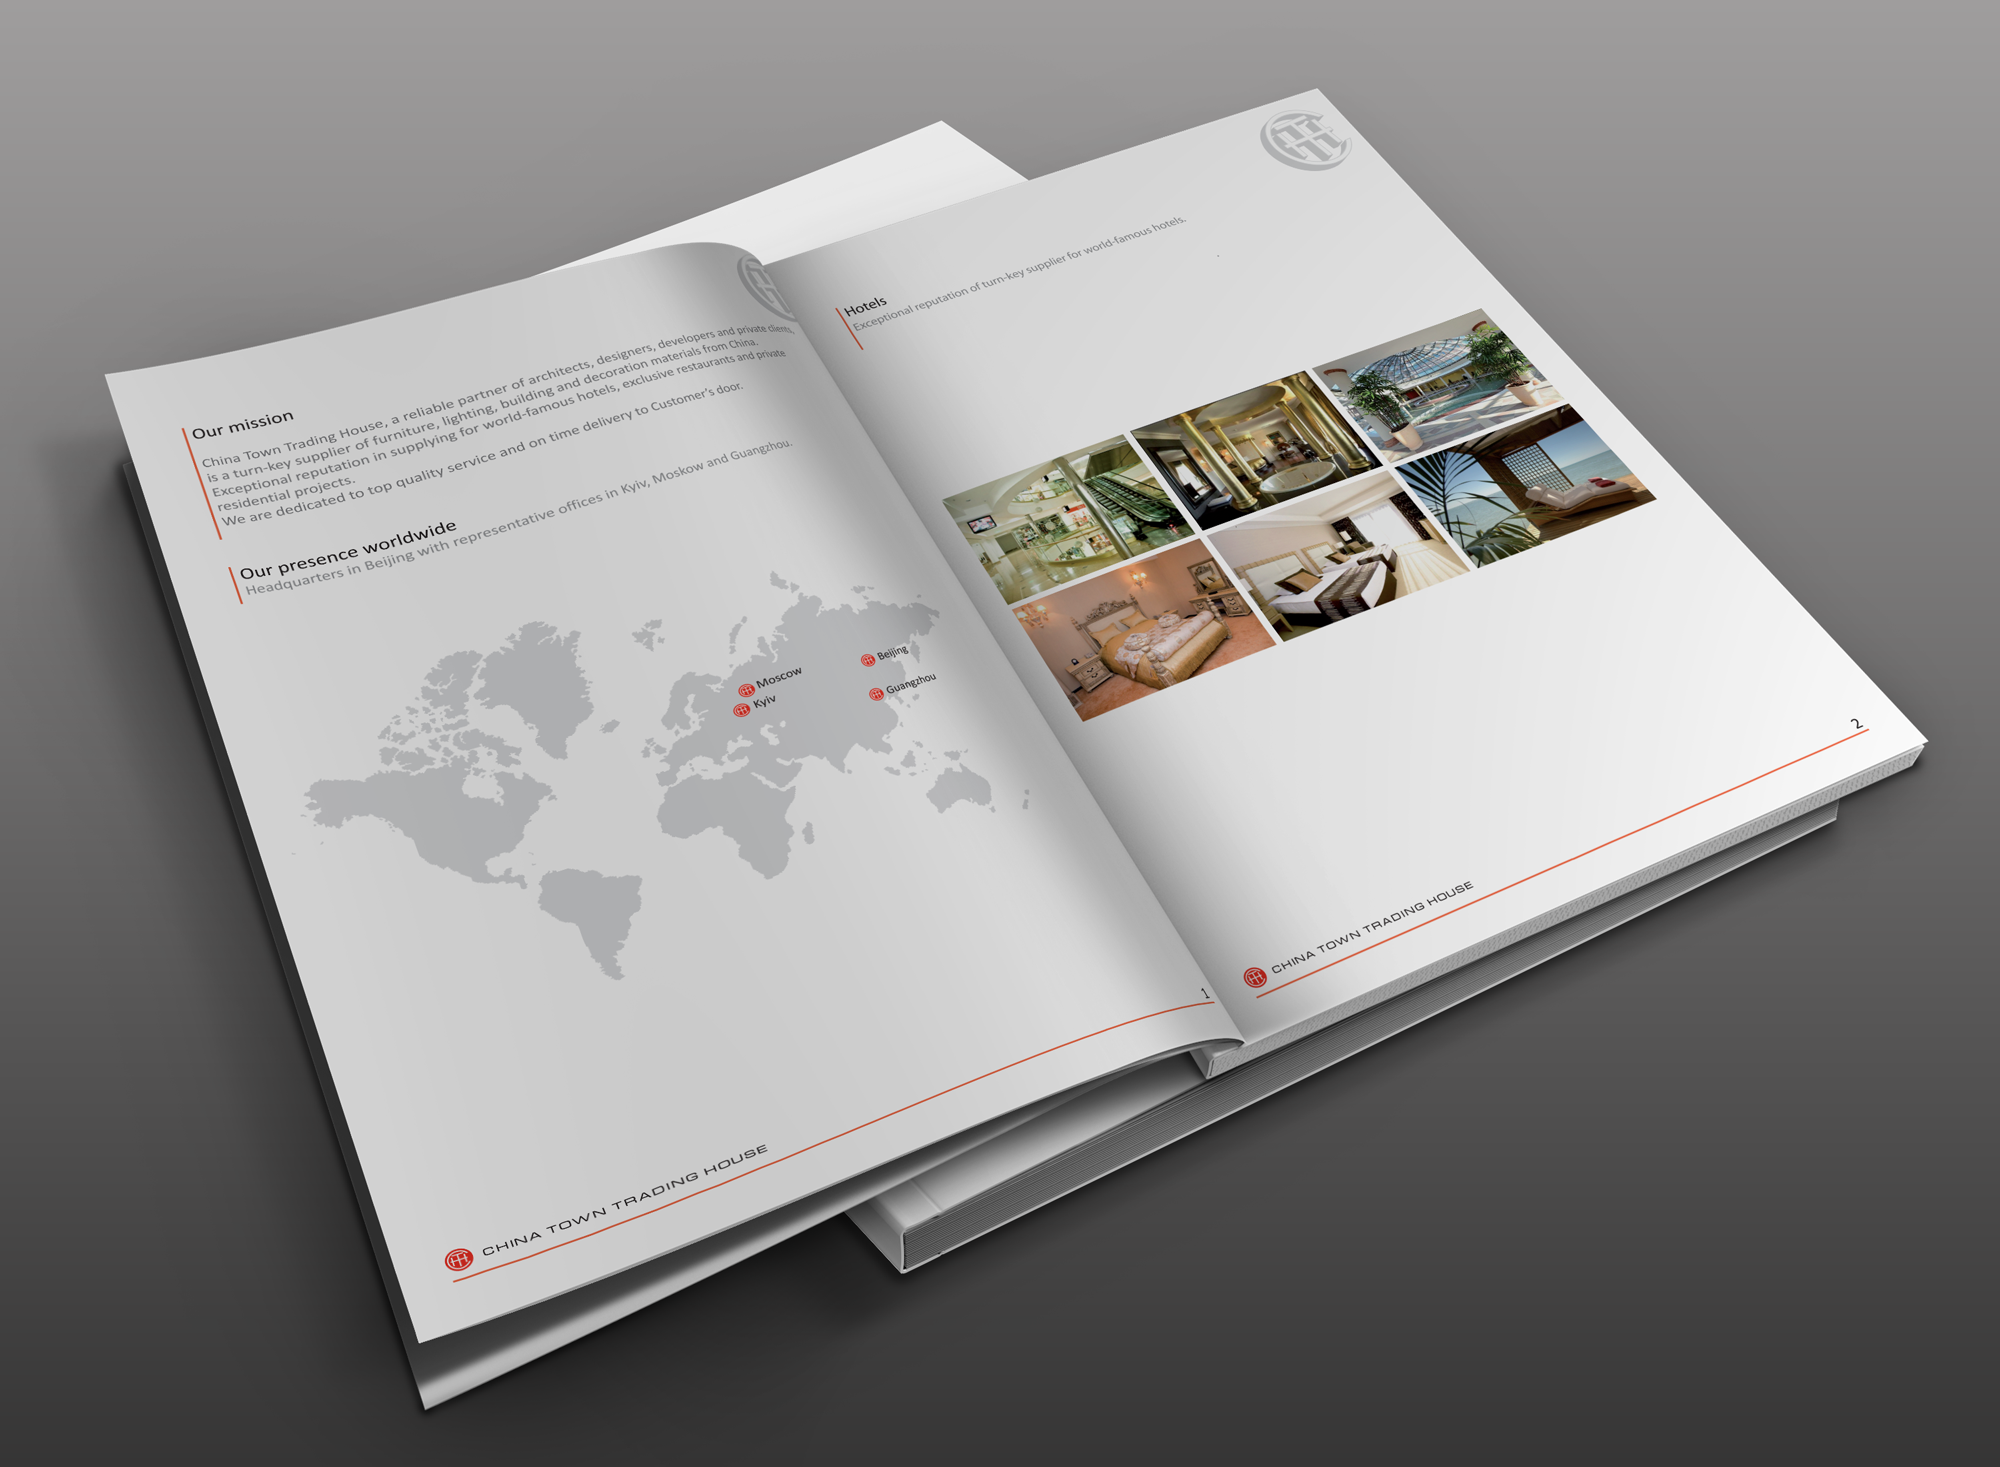 Presentation for China Town Trading House #8ncm #CTTH #corporateidentity